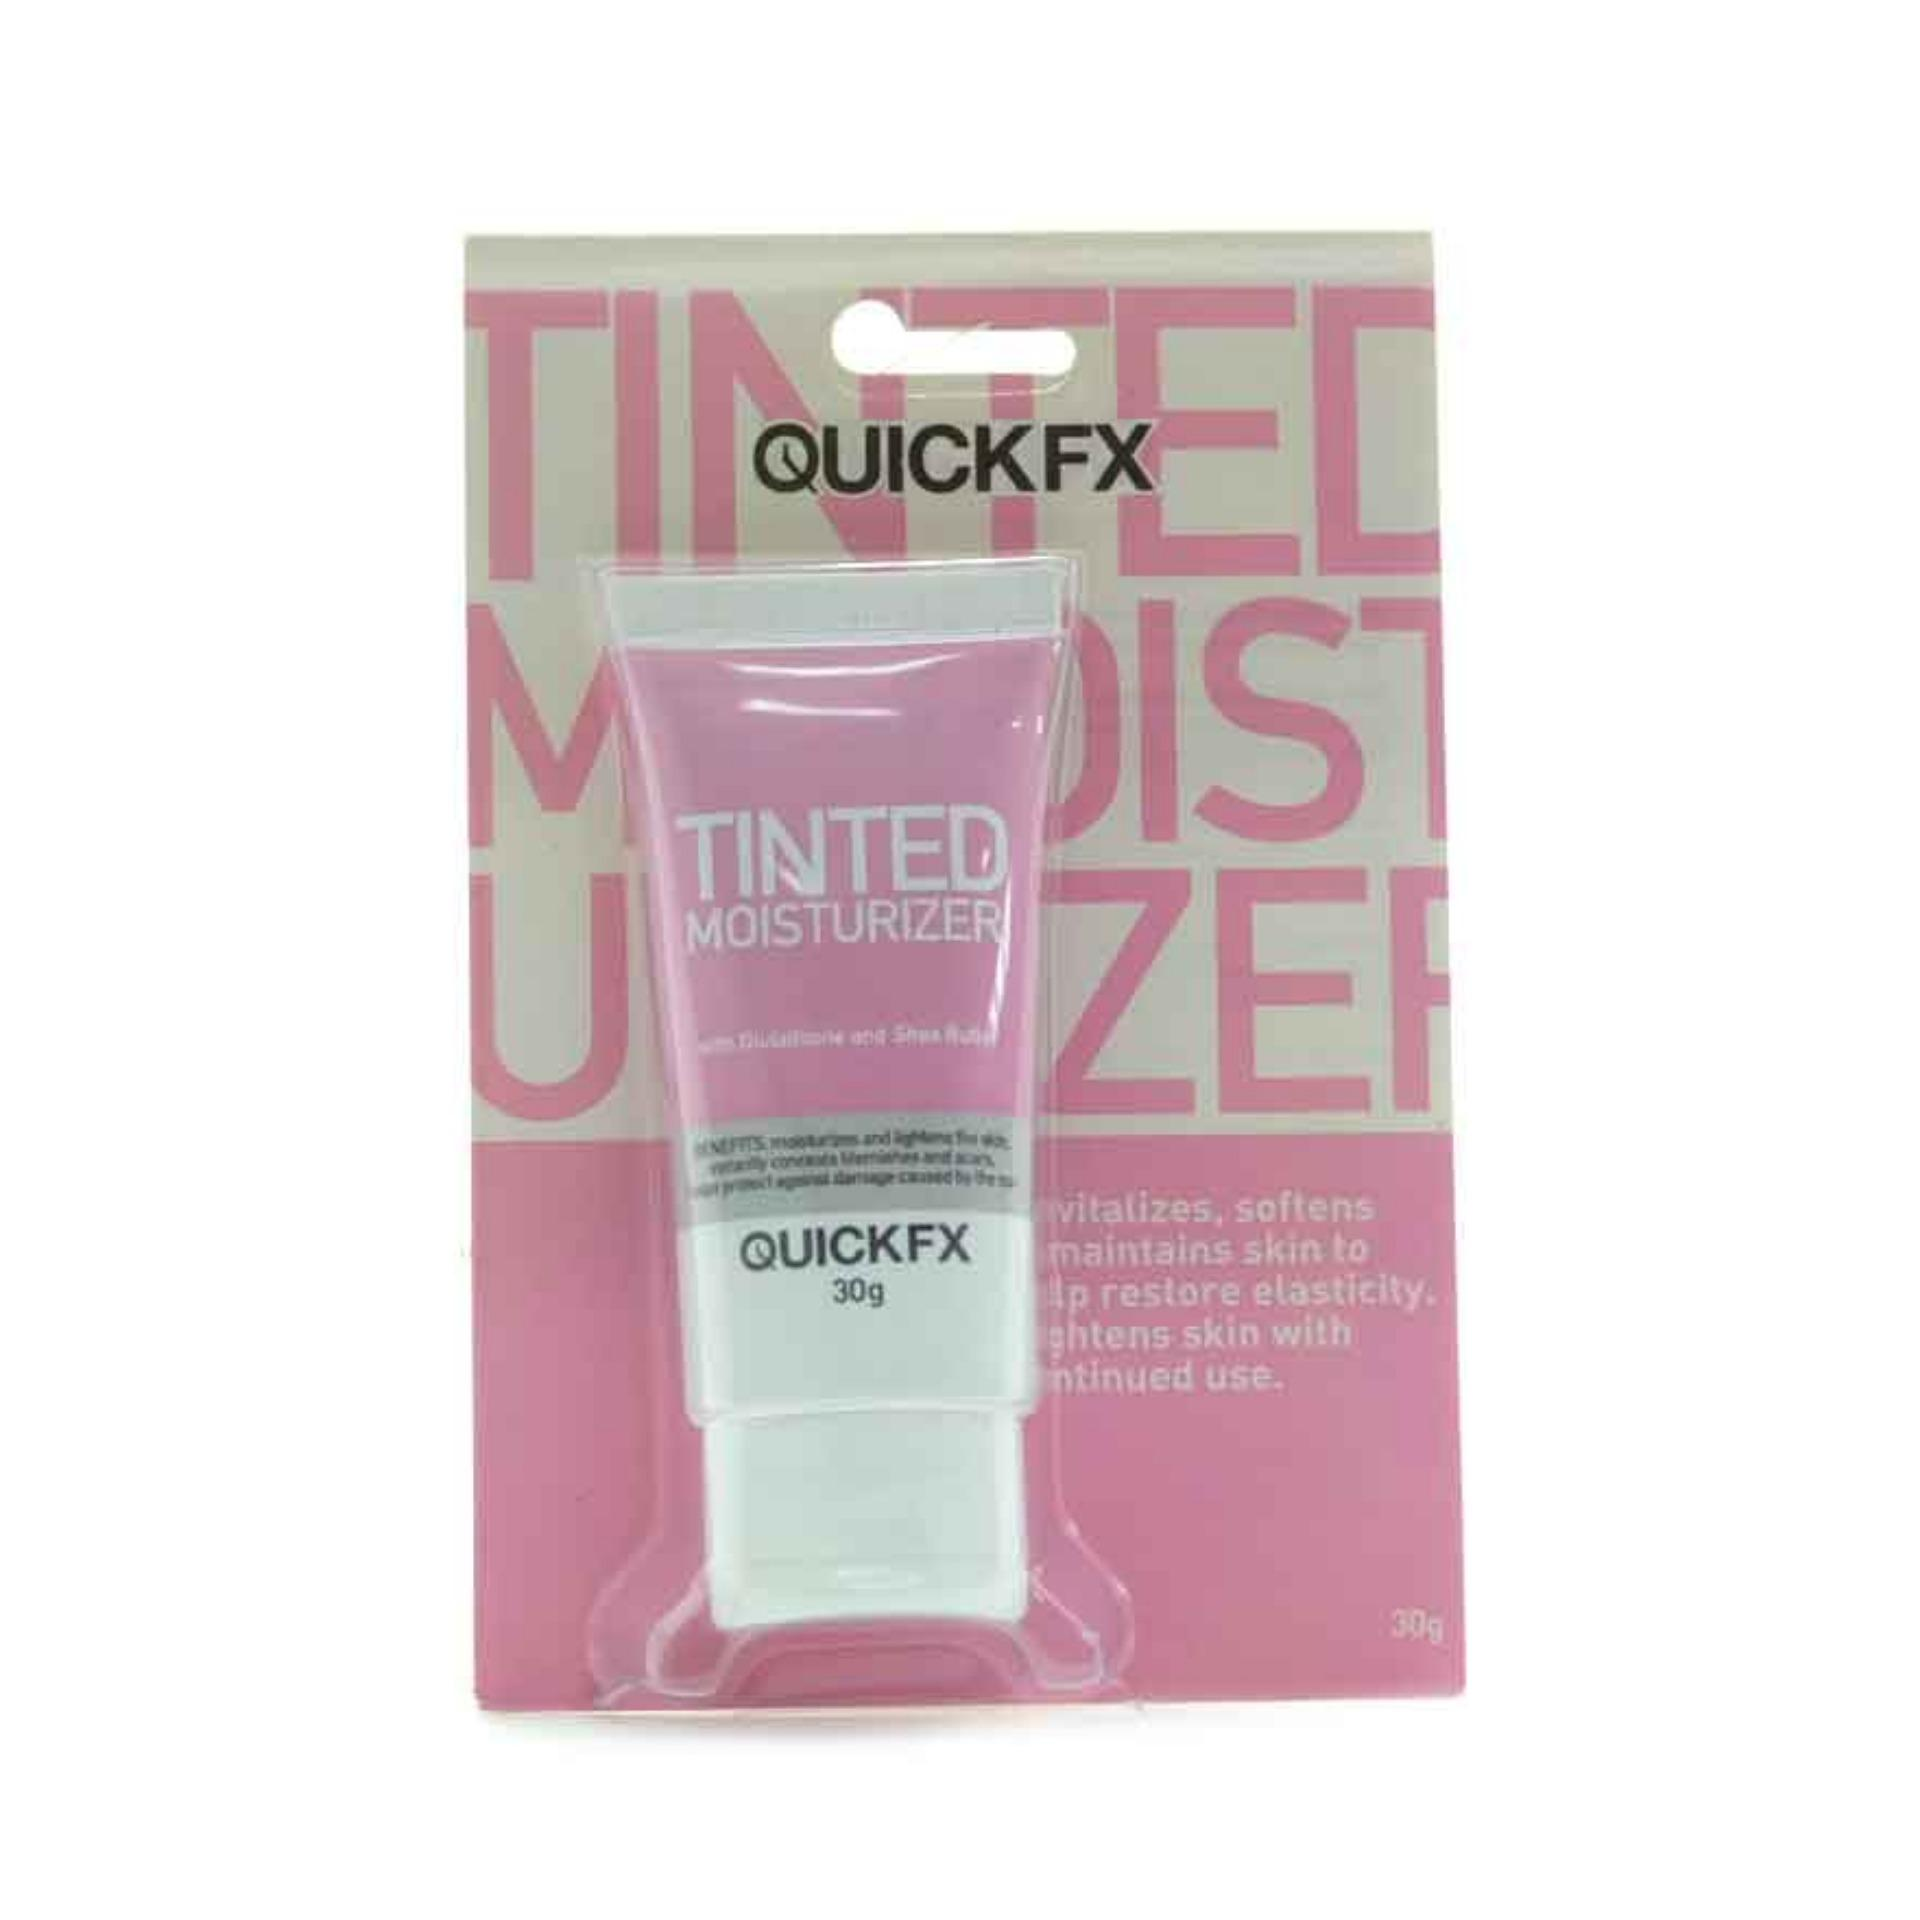 Quick Fx Tinted Moisturizer 30g By Watsons Personal Care Stores.